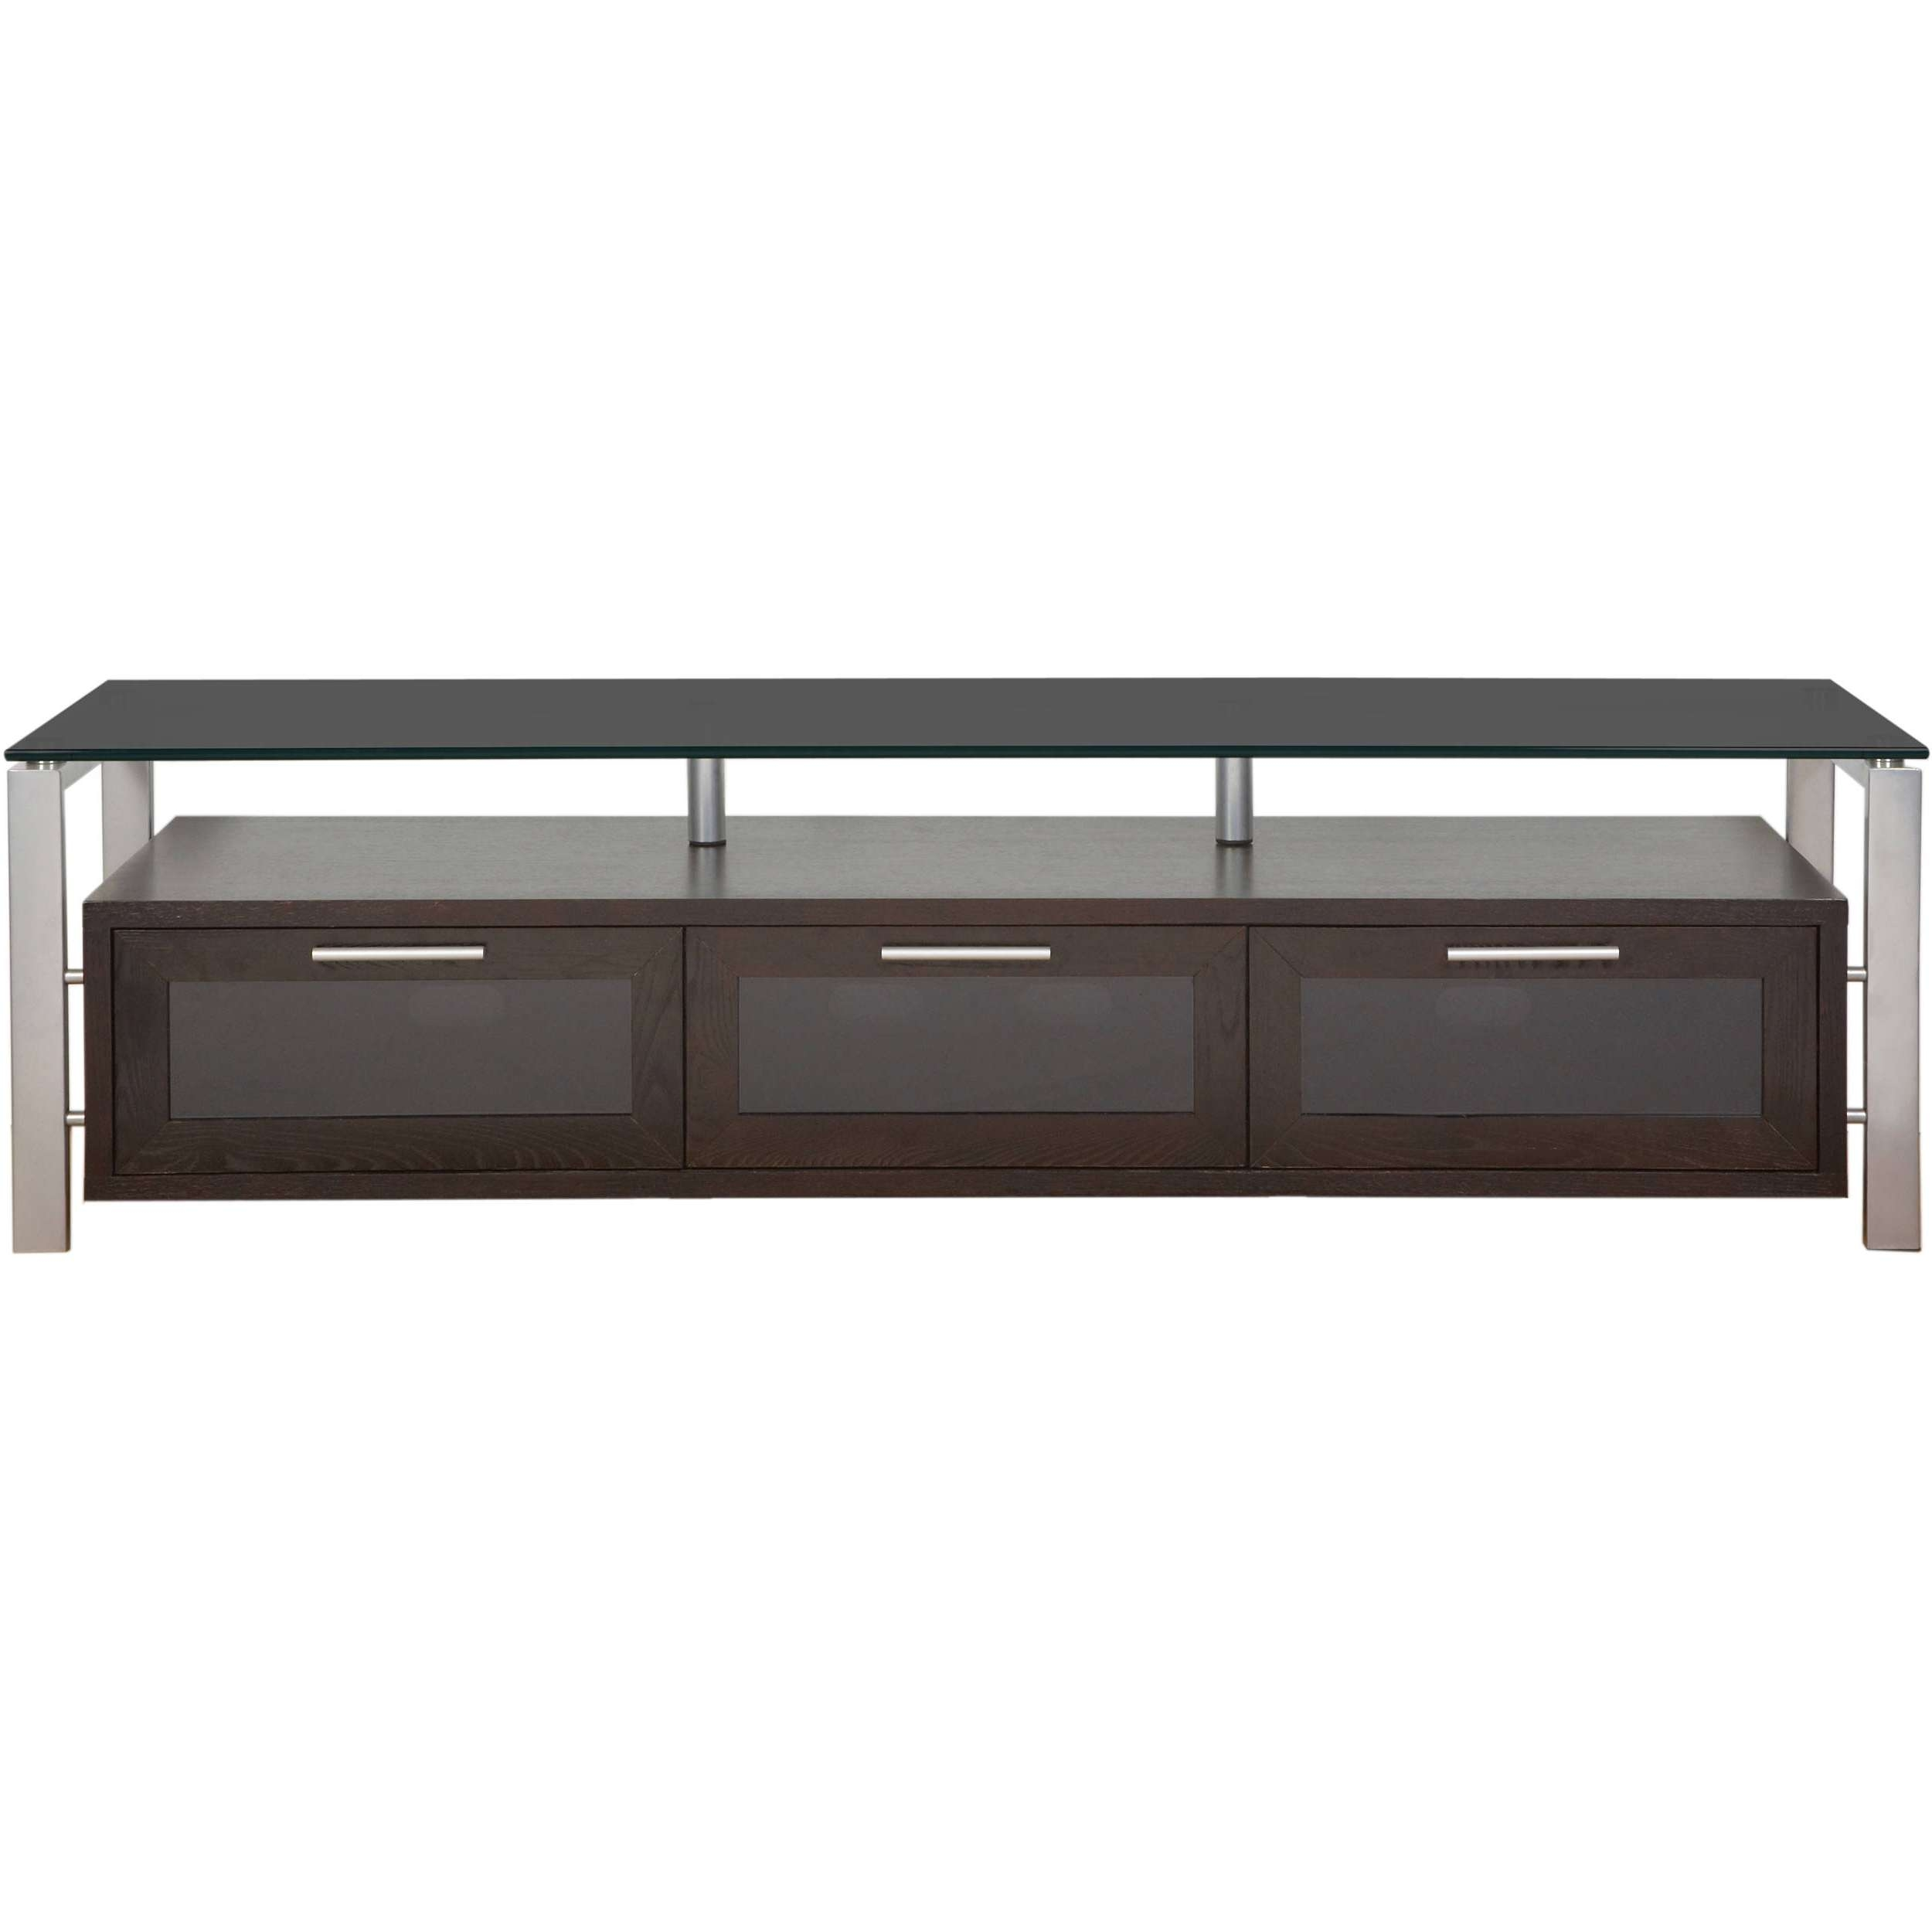 Plateau Decor 71 Tv Stand Decor 71 (E) S Bg B&h Photo Video For Silver Tv Stands (View 11 of 15)